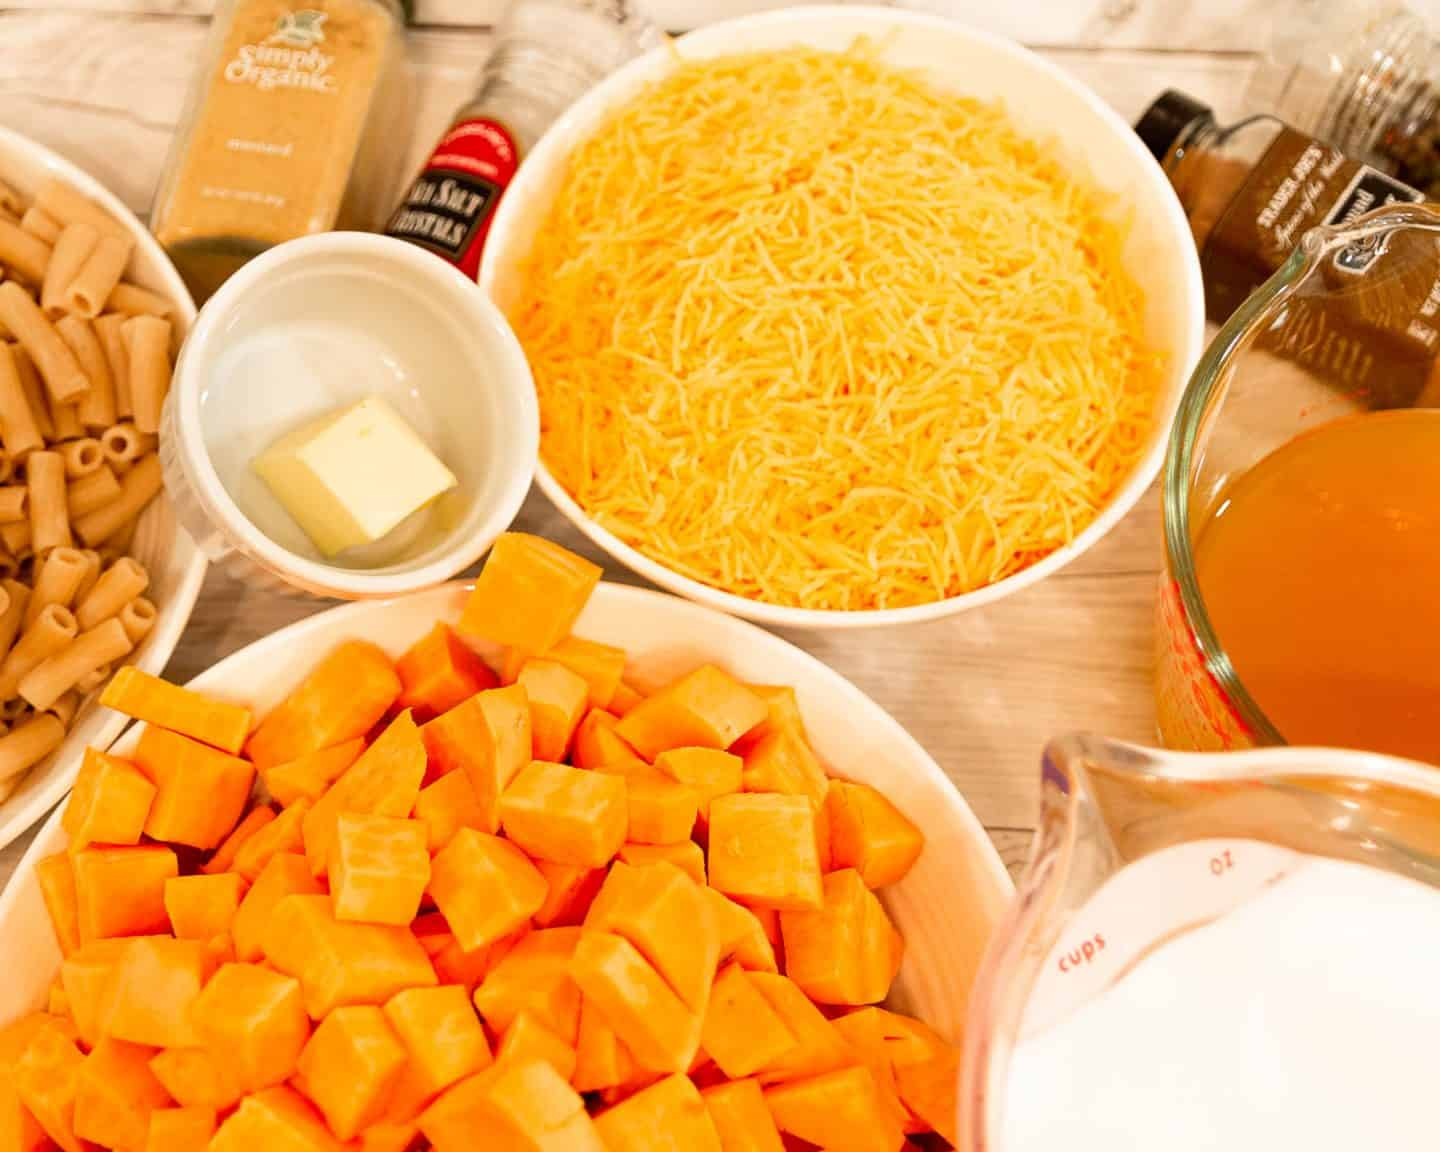 Ingredients for Making Butternut Squash Mac and Cheese